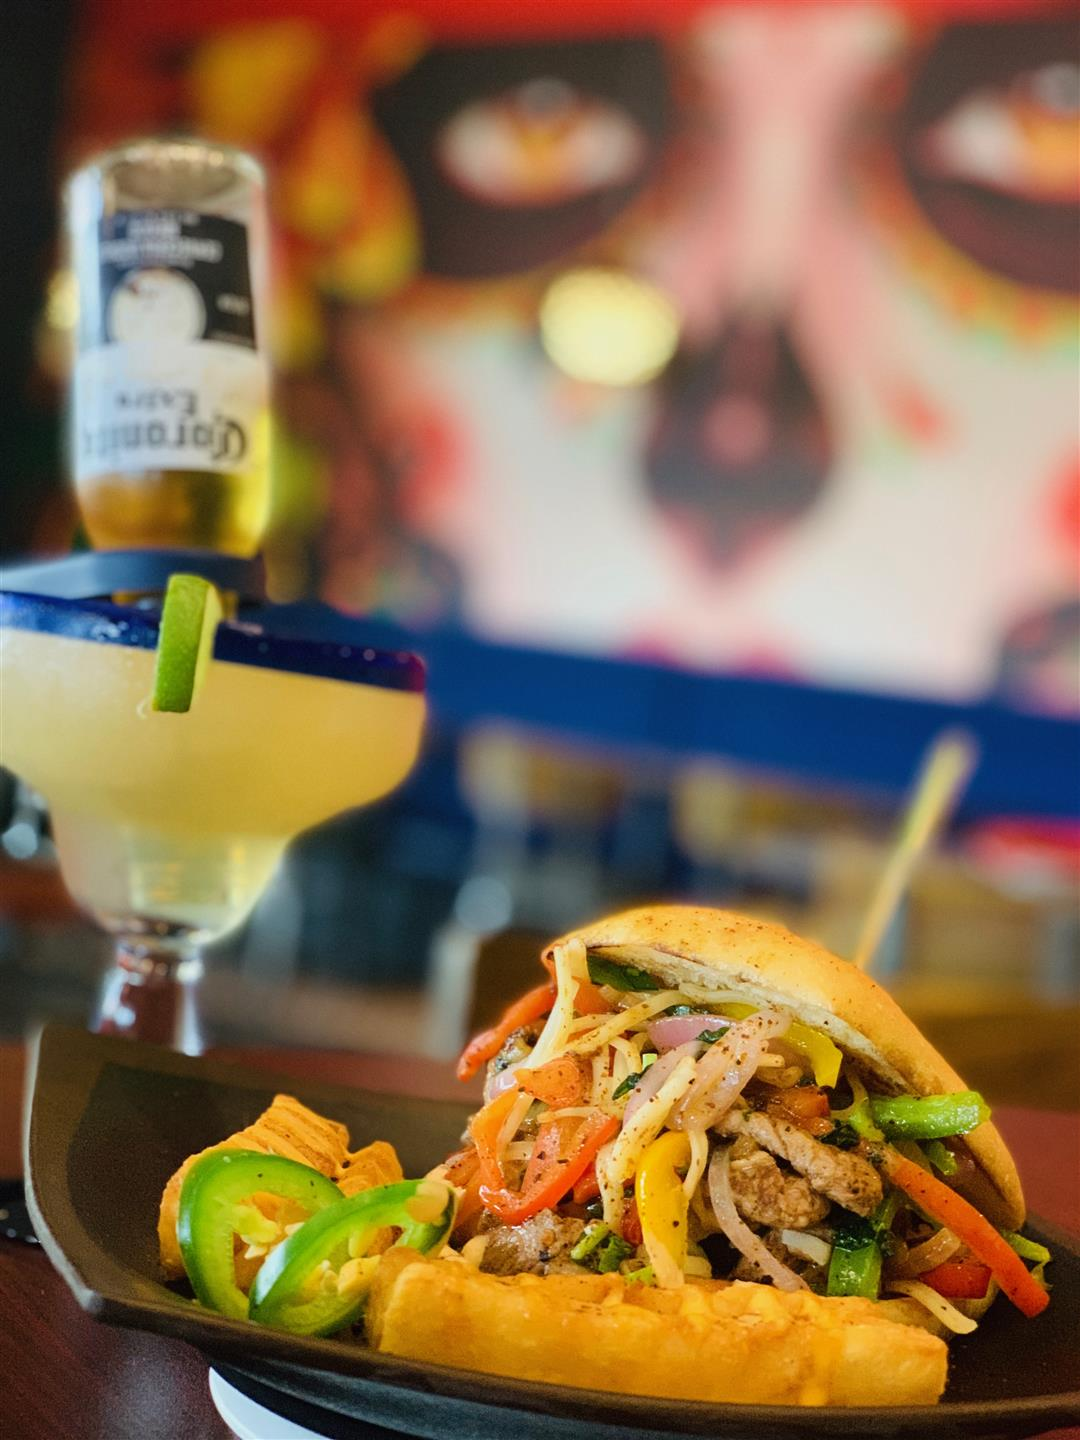 Mexican philly steak torta with steak, bell pepper trio, lettuce, onions and cheese on a toasted torta roll with a corona margarita on the side